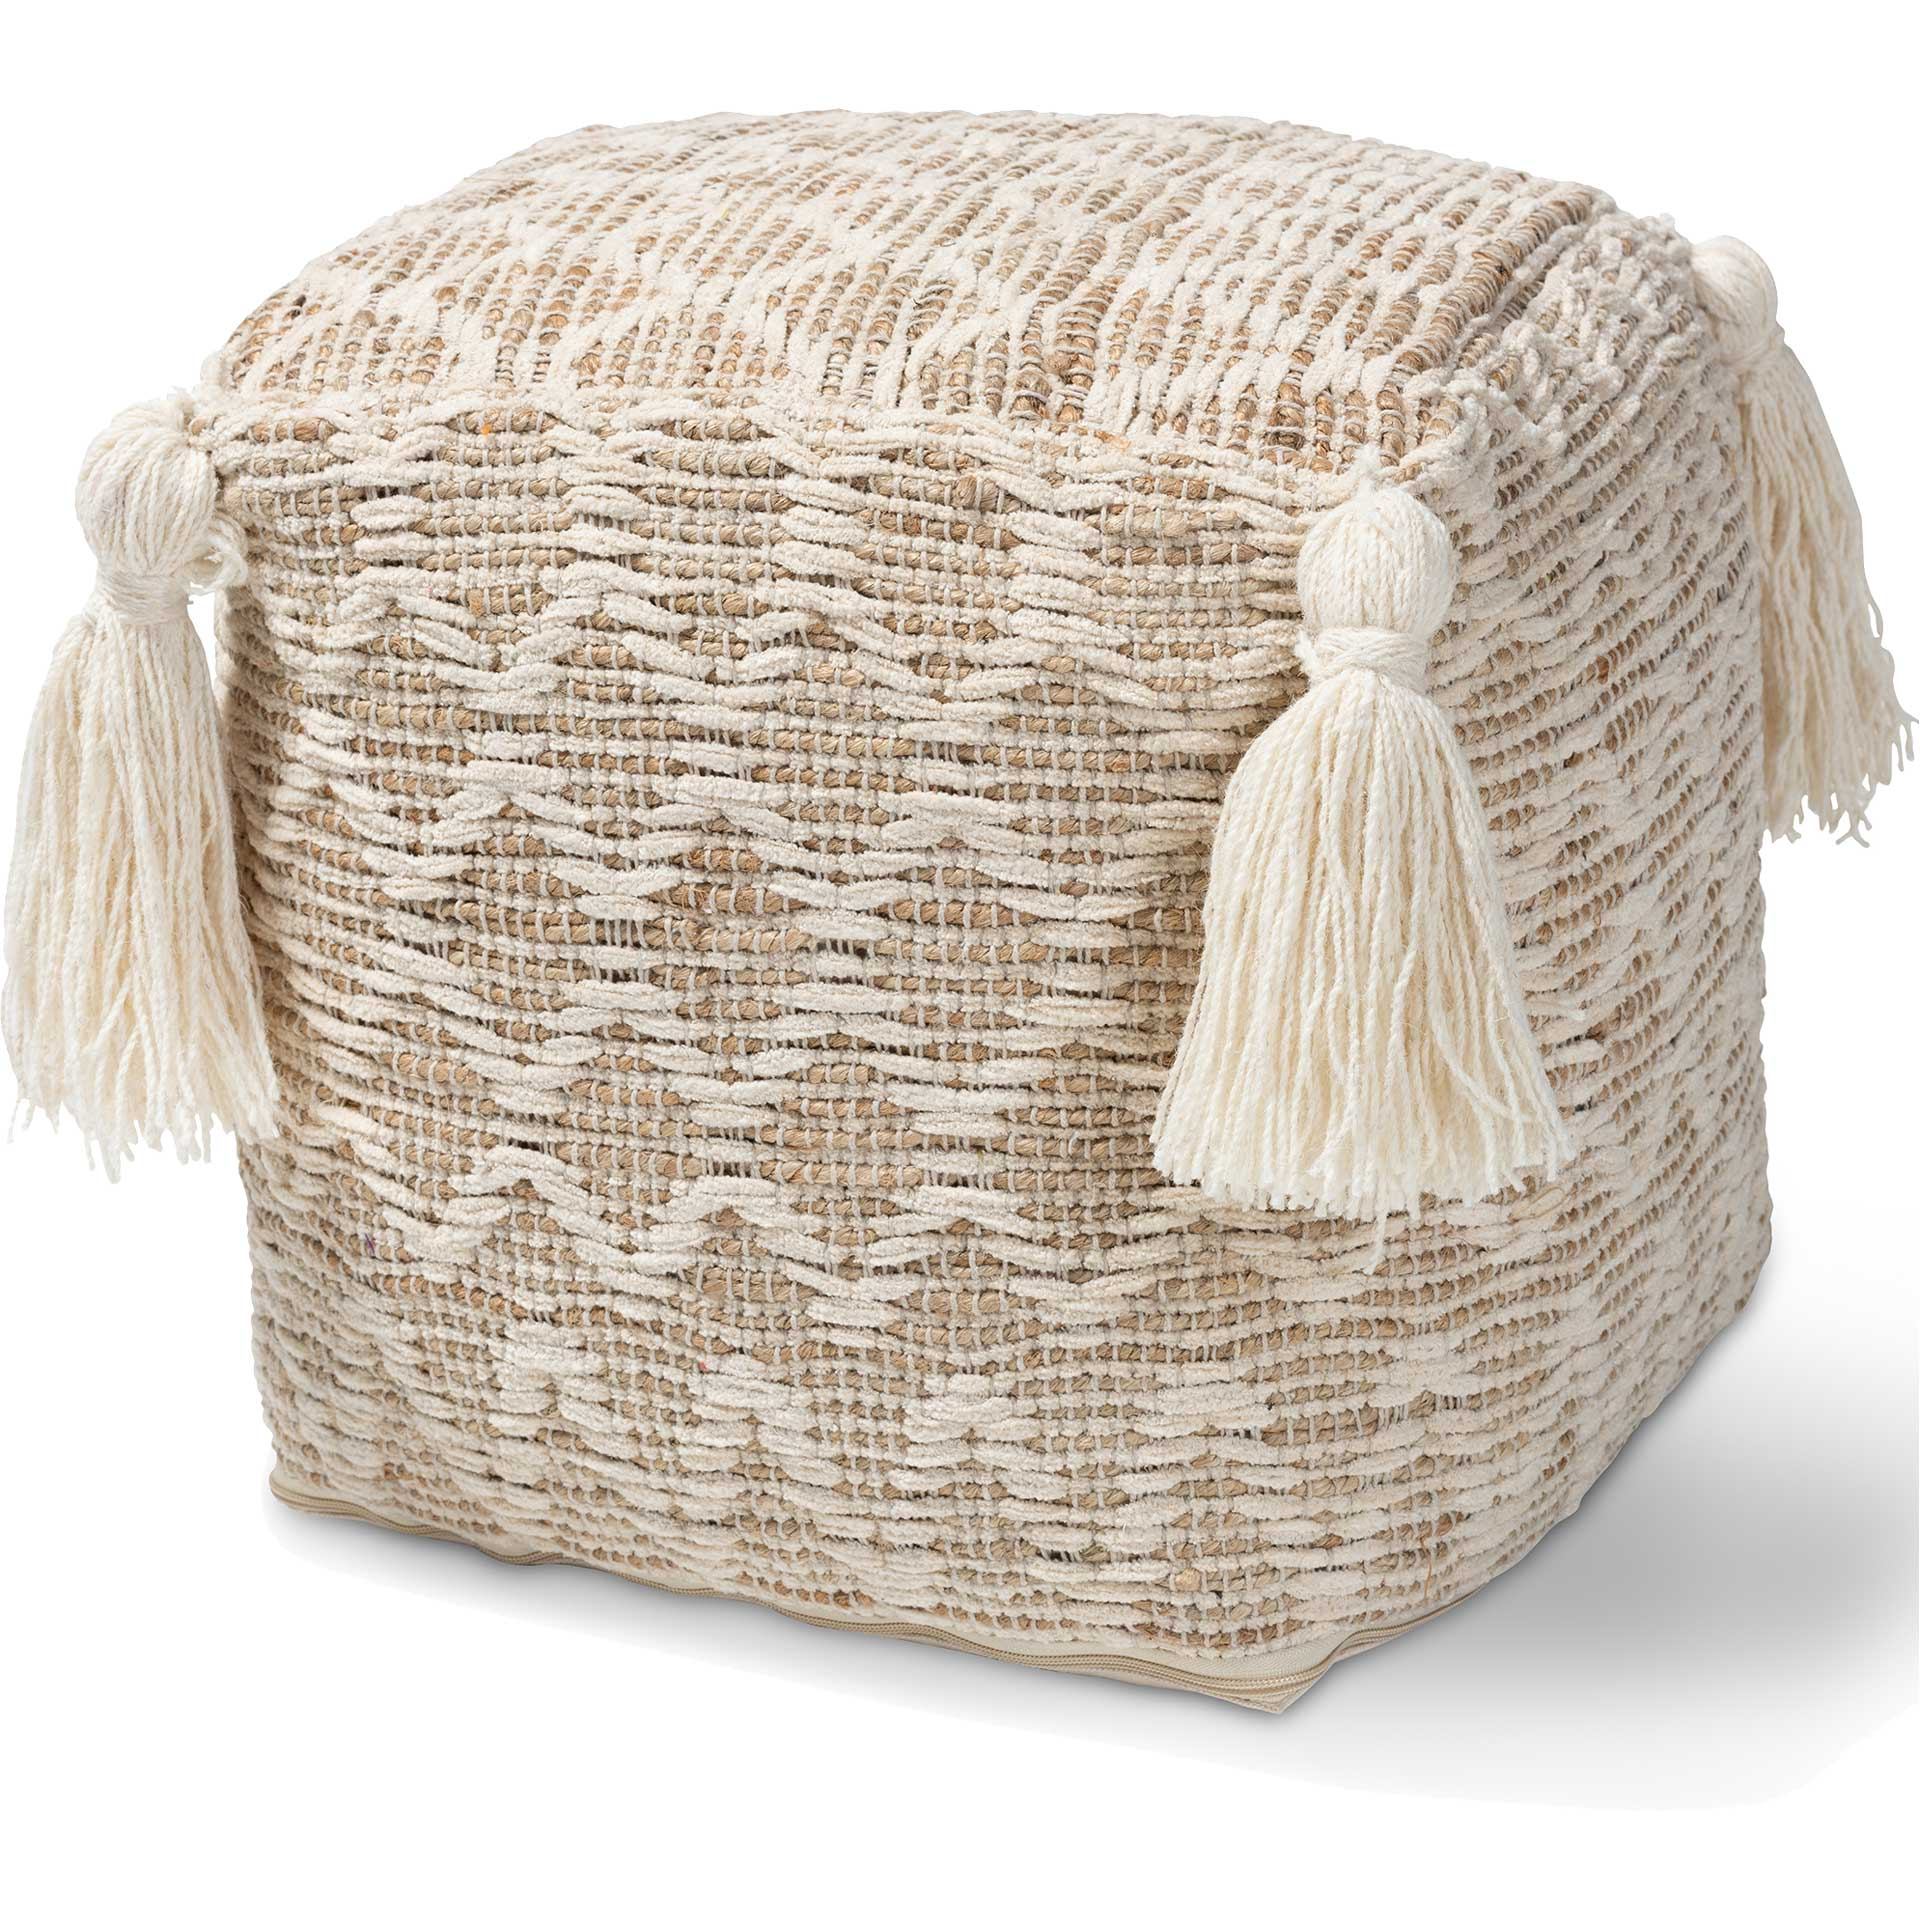 Noam Handwoven Cotton/Hemp Pouf Natural/Ivory